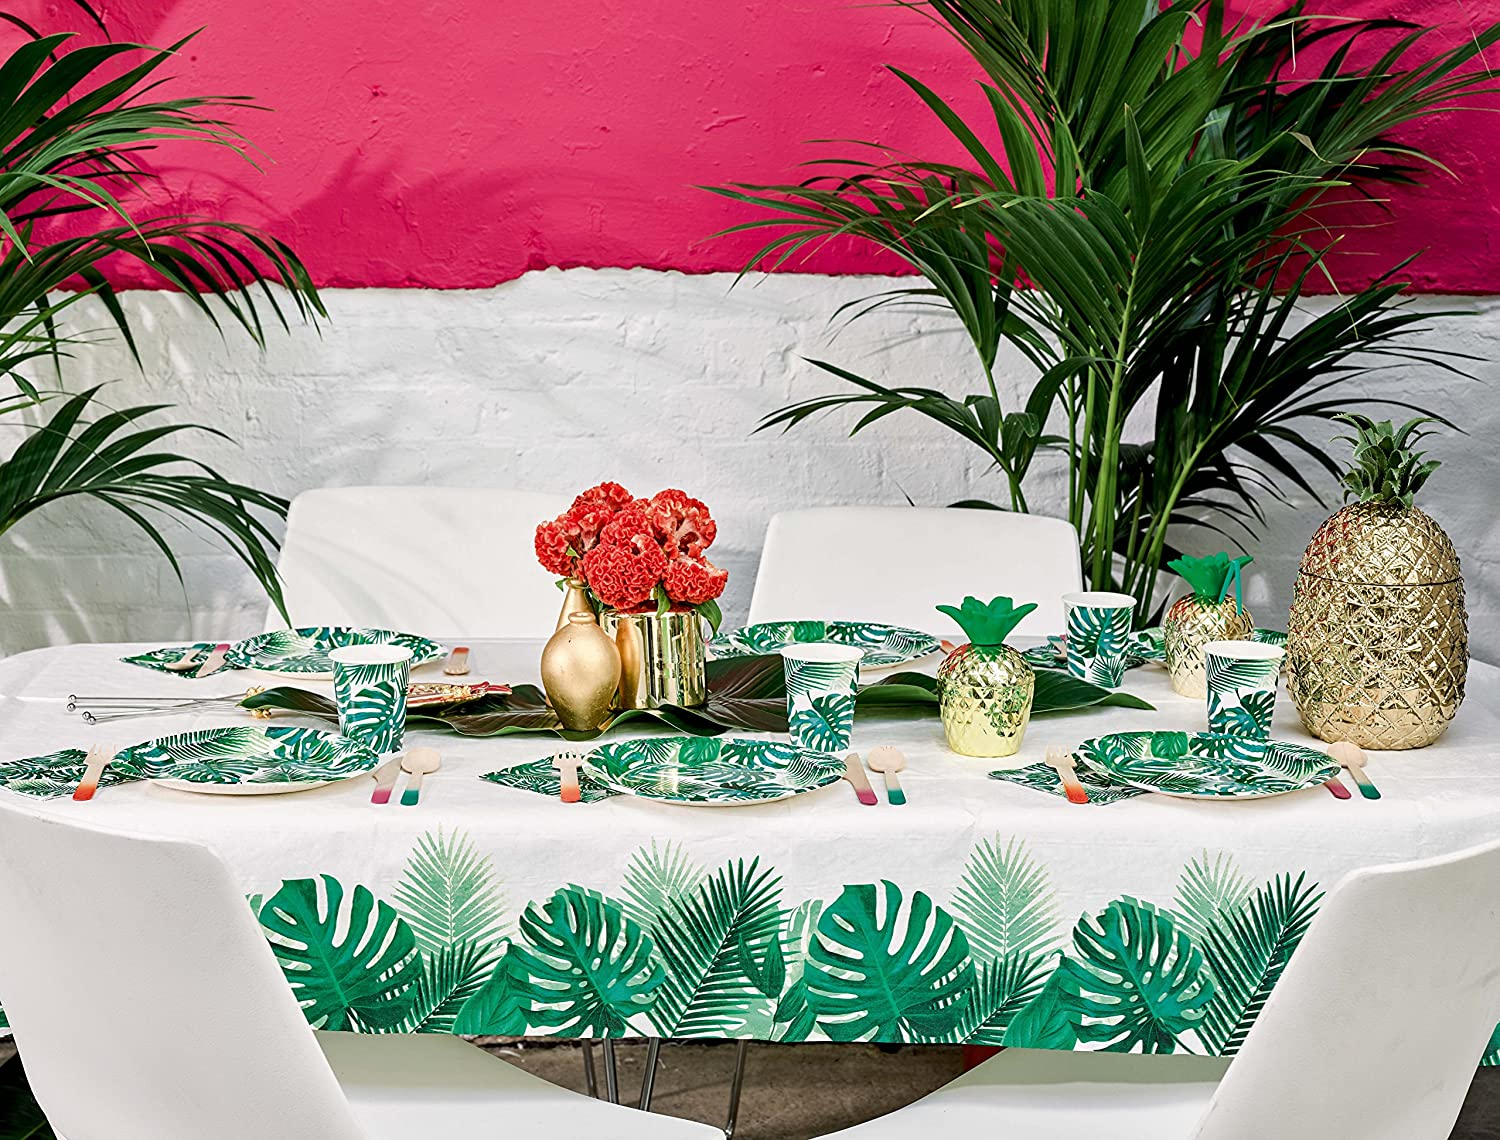 Paper Tablecloth Party Table Covers Disposable Table Cloths Party Decorations Party Supplies Paper Table Cloths for Parties Beach Party Hawaiian Theme Luau Party Palms 47 x 70